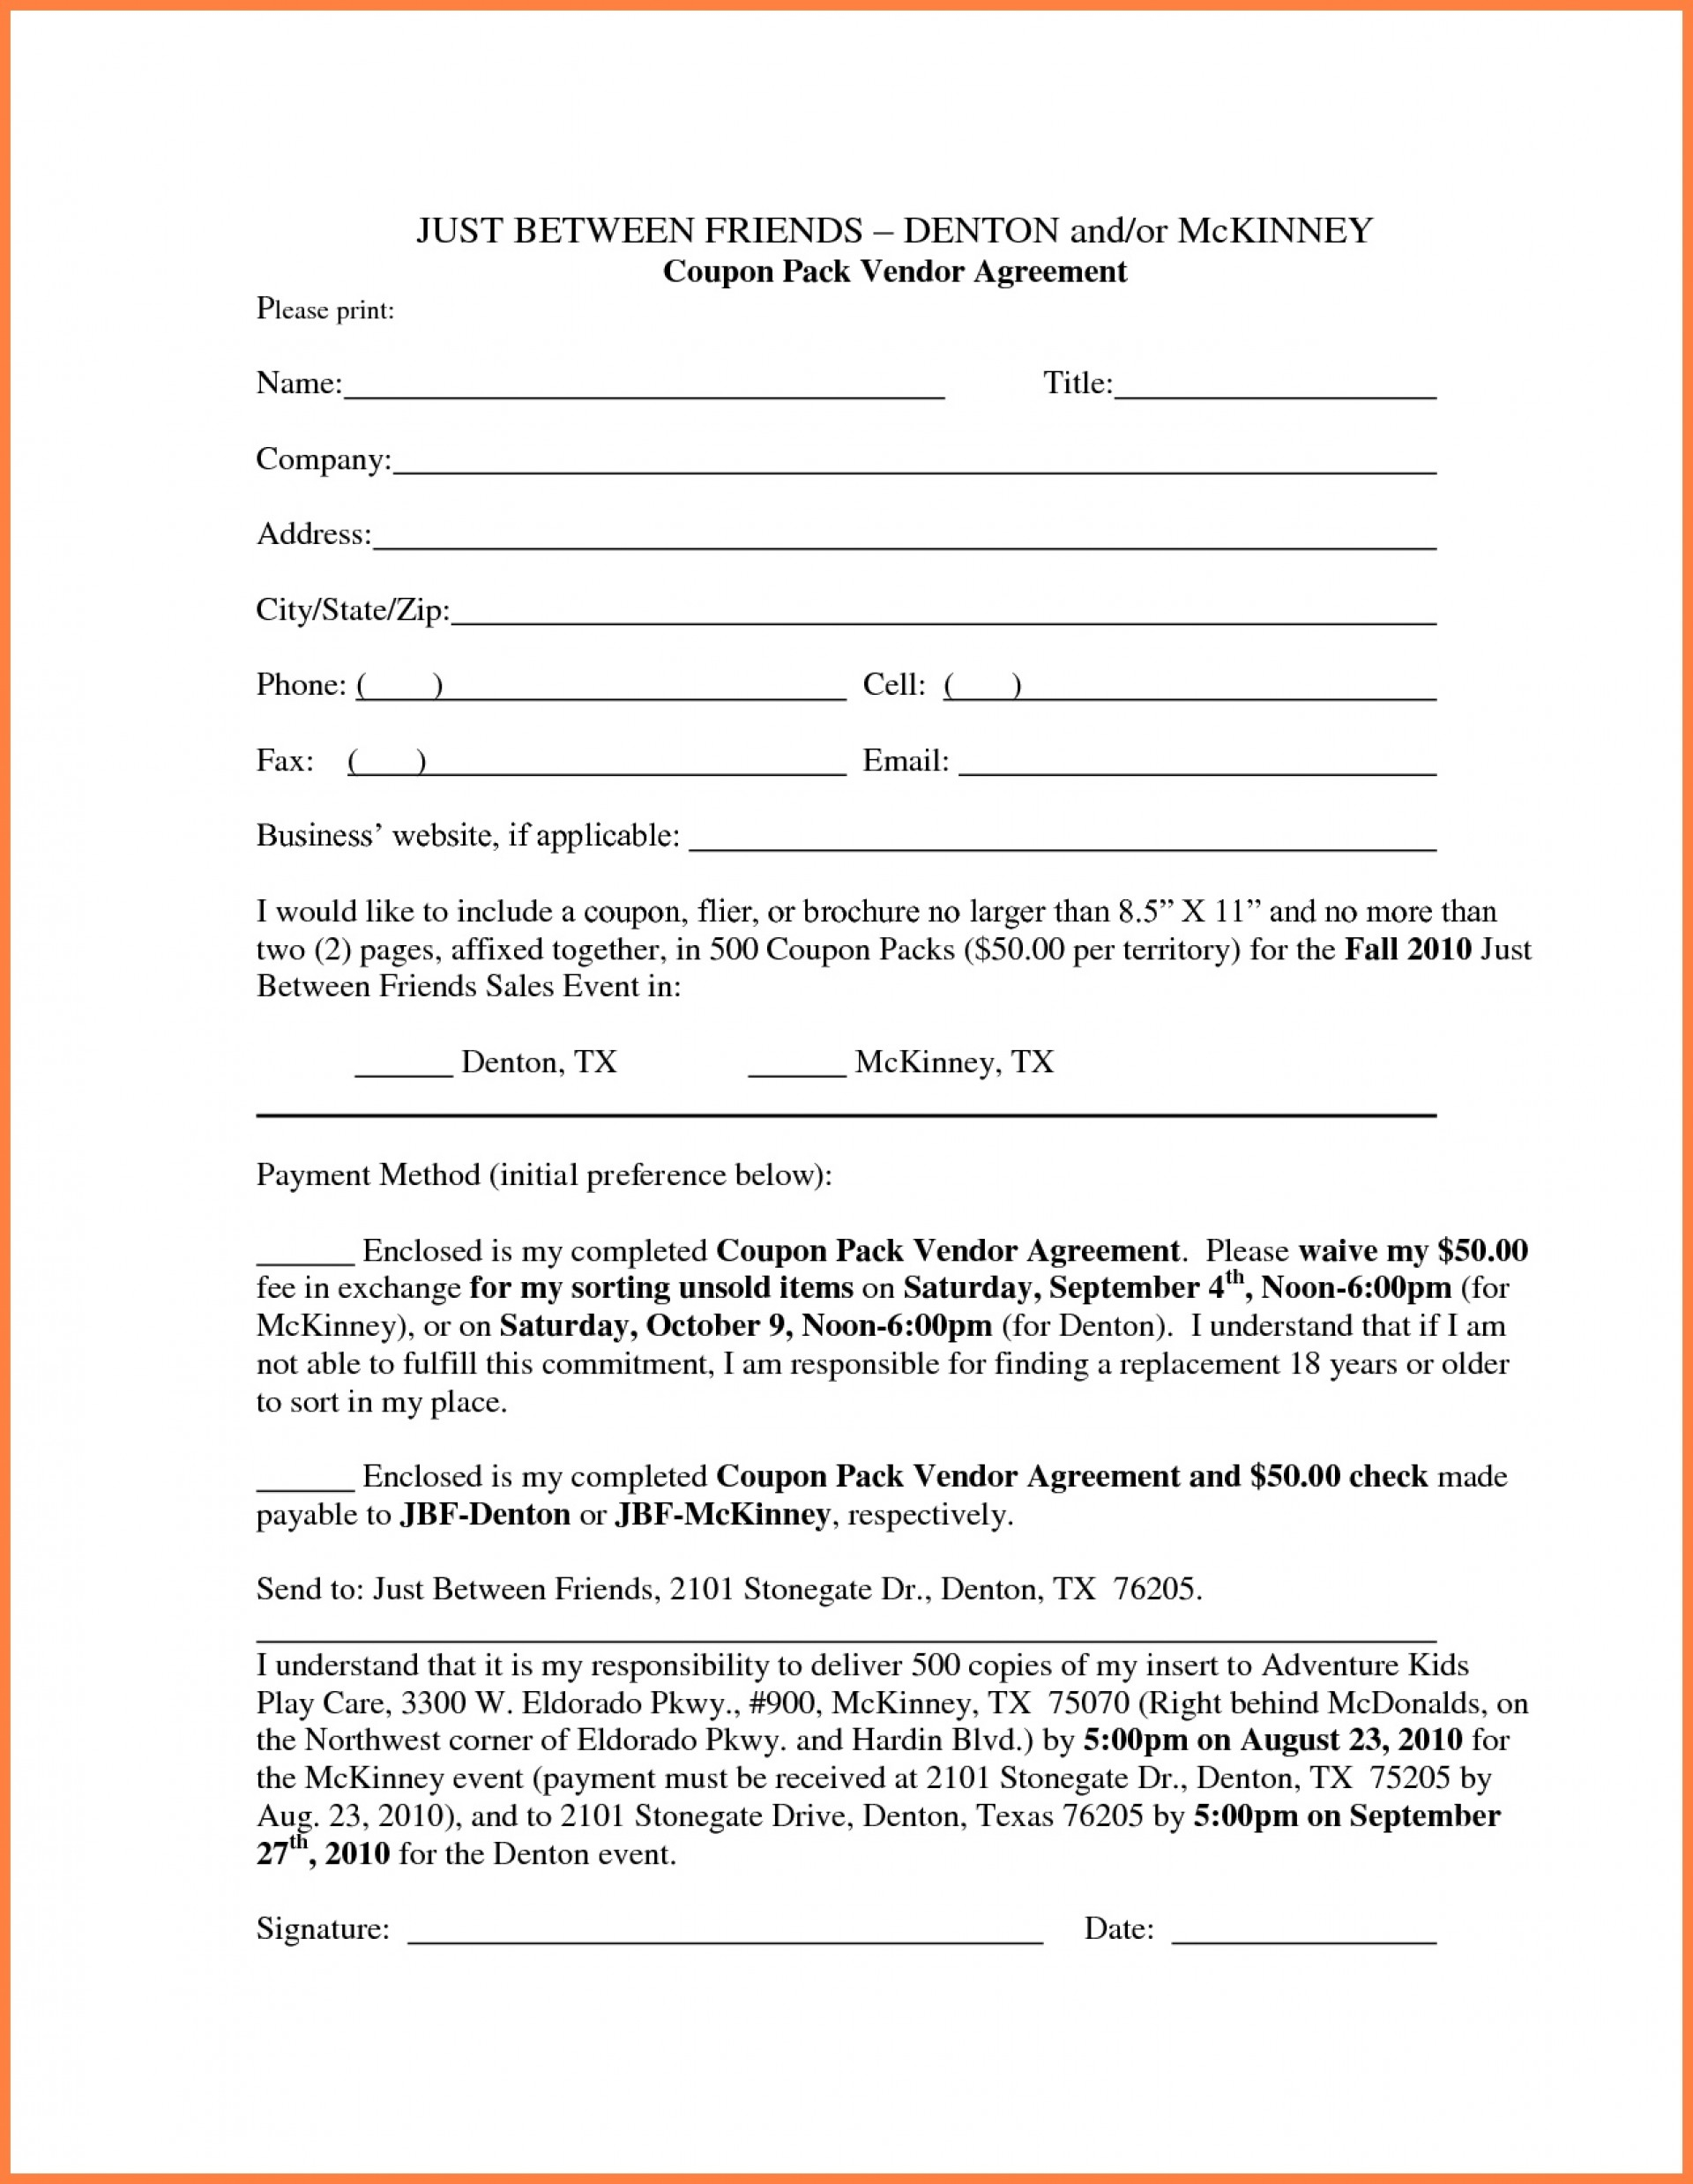 025 Personal Loan Agreement Template Canada Free Printable With Blank Loan Agreement Template